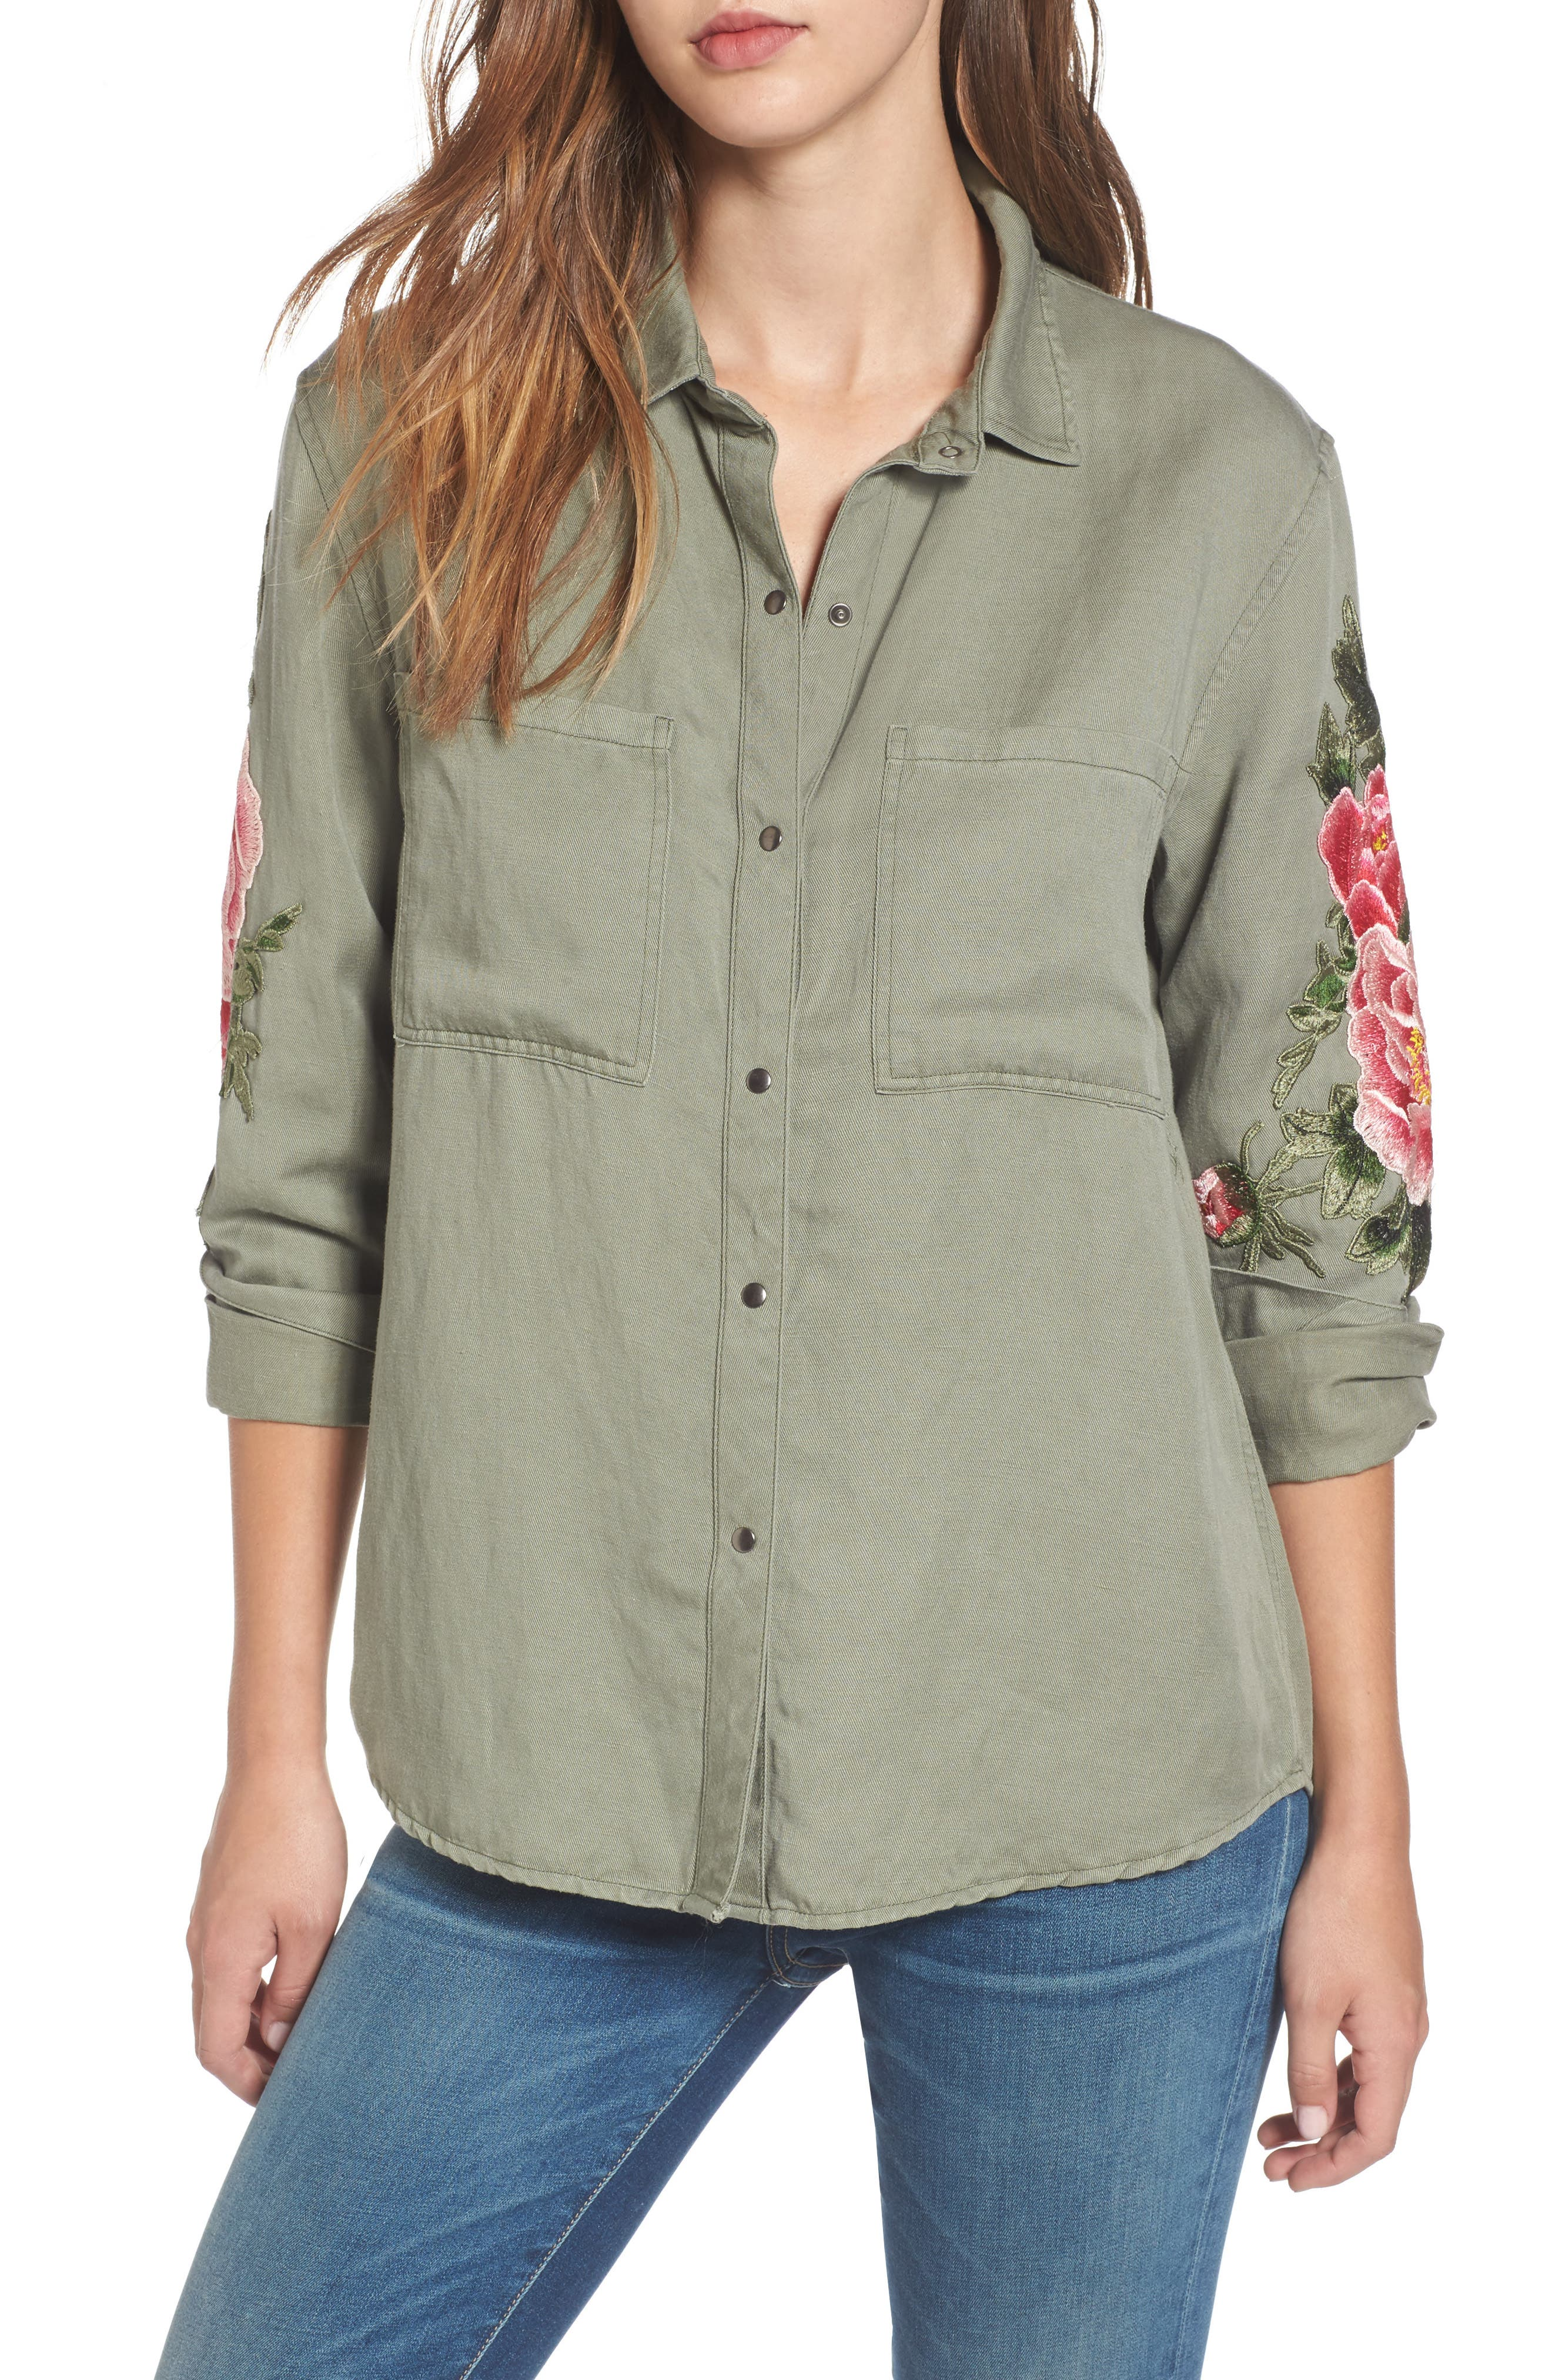 Marcel Embroidered Shirt,                             Main thumbnail 1, color,                             302